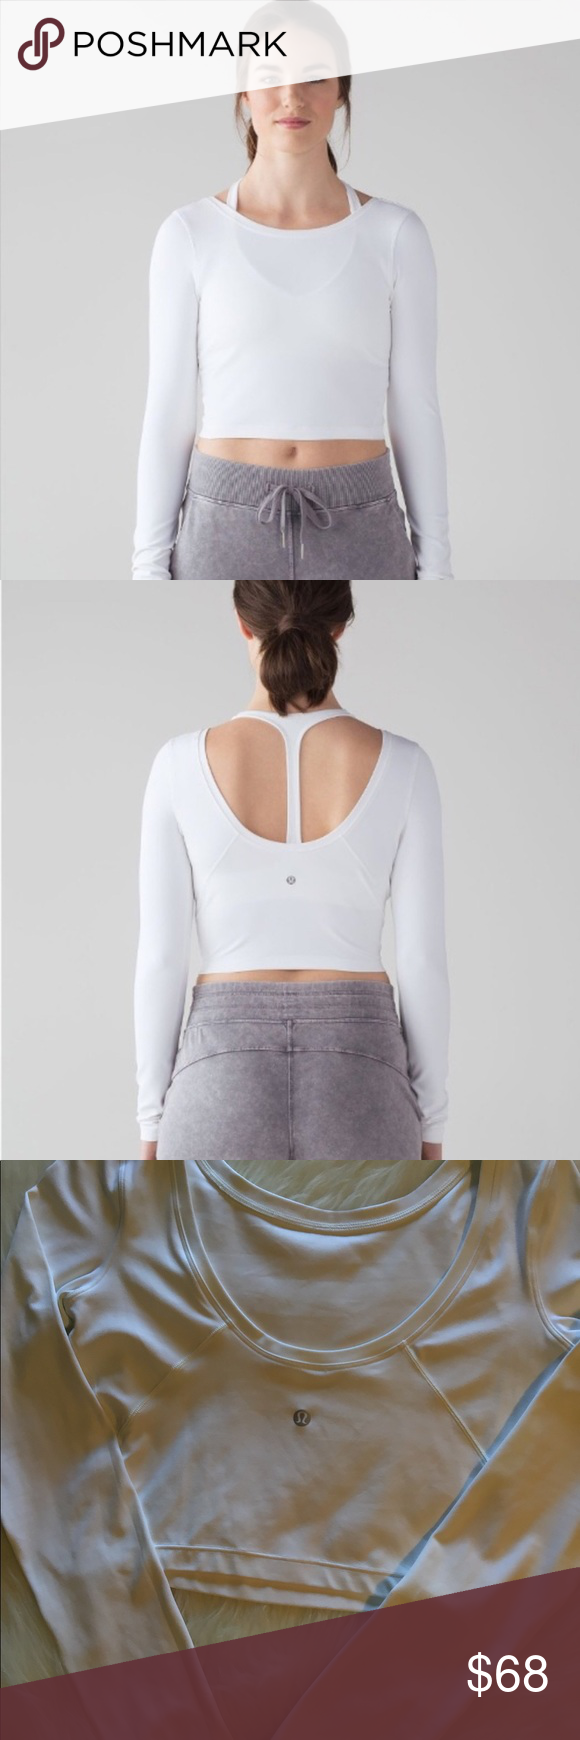 f0d567f31c2 Lululemon Arise Cropped Long Sleeve A great Lululemon crop top in great  condition. Lightweight and